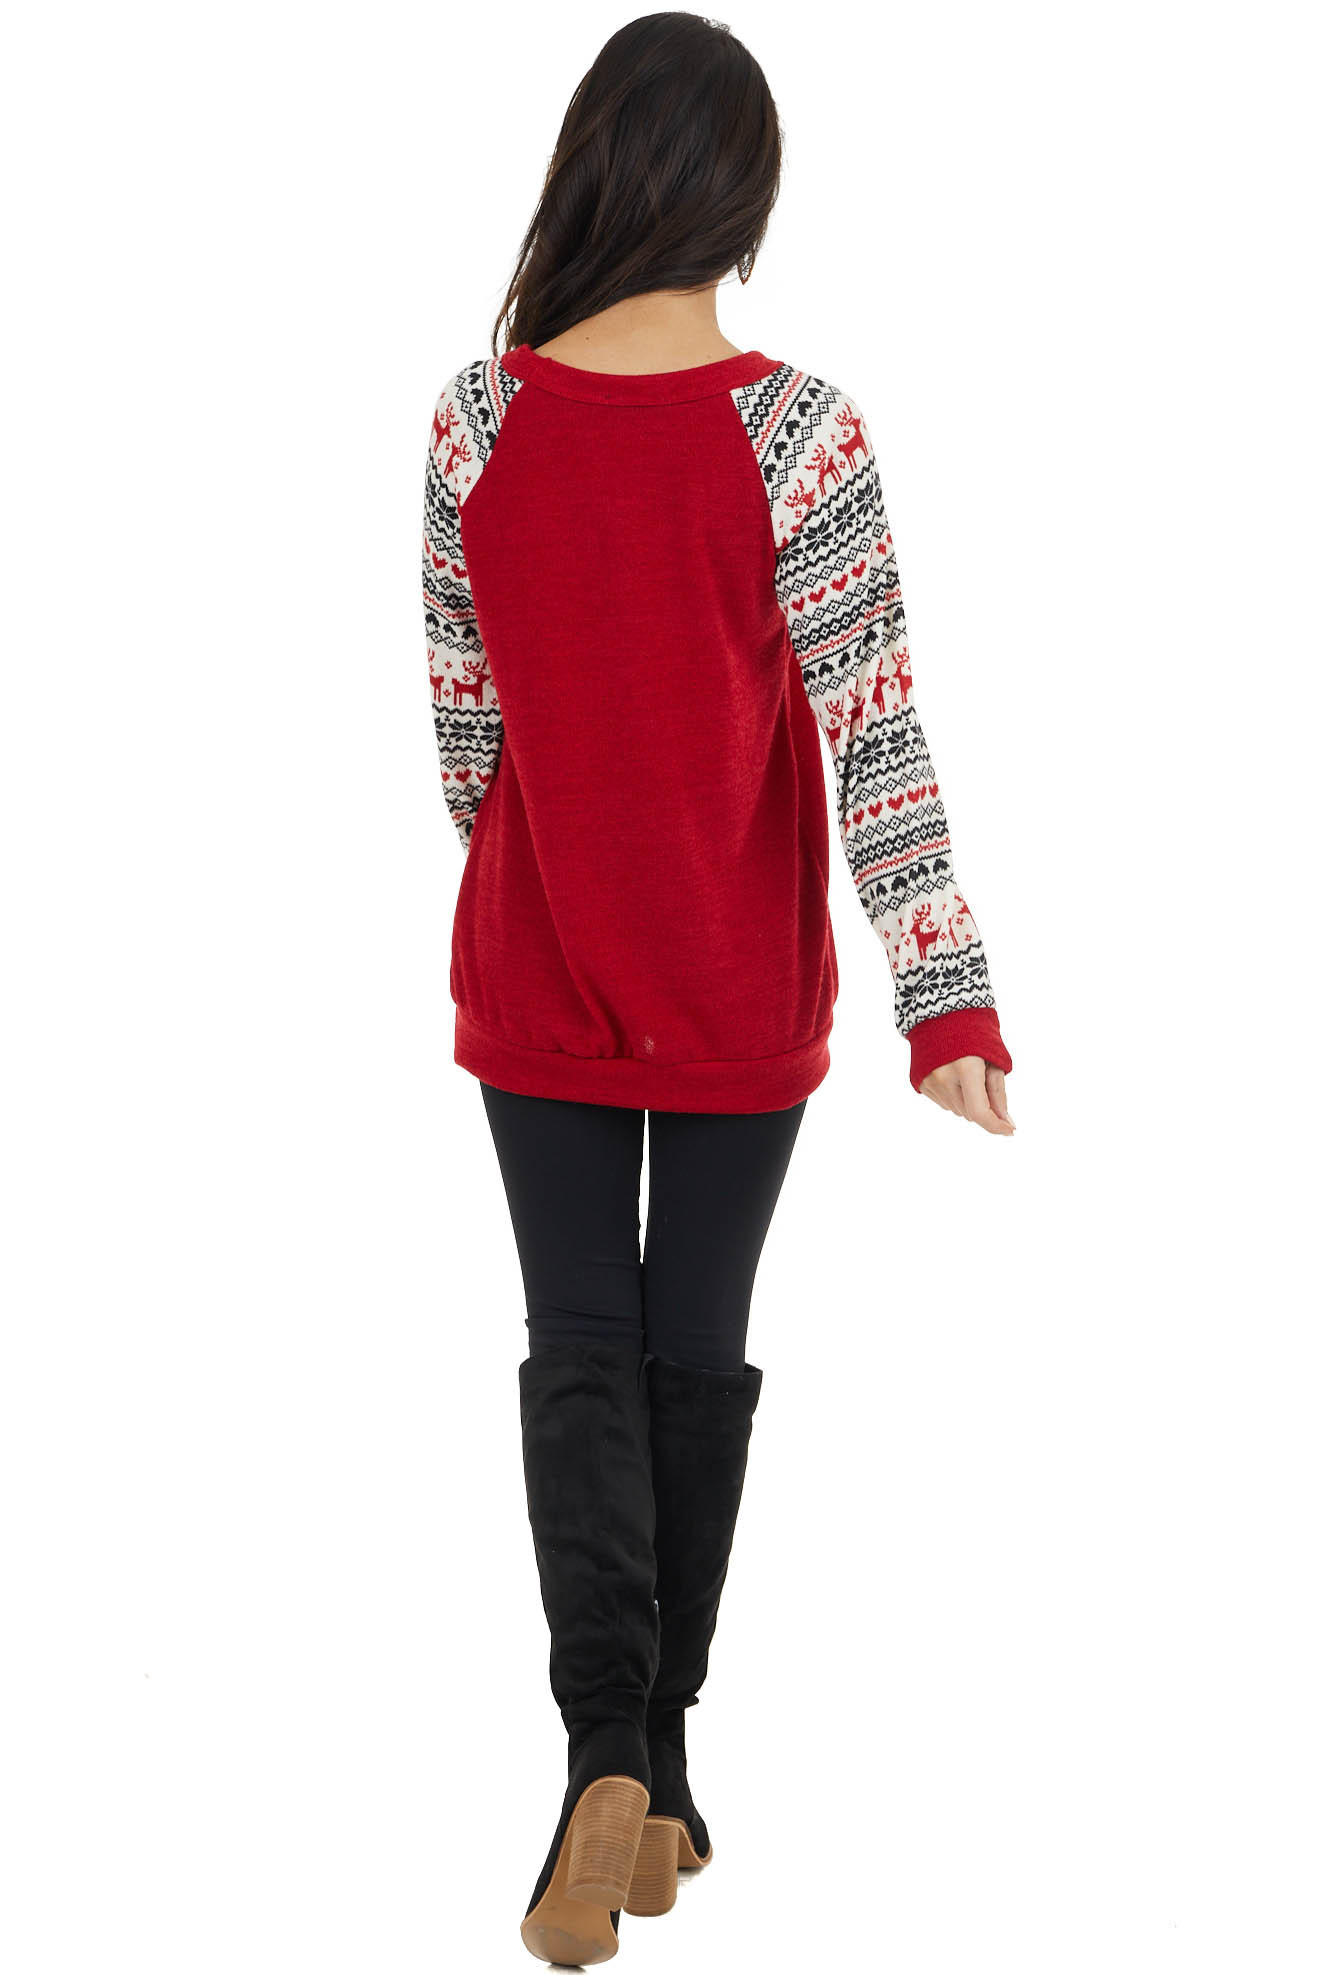 Crimson Red Long Sleeve Knit Top with Holiday Print Contrast